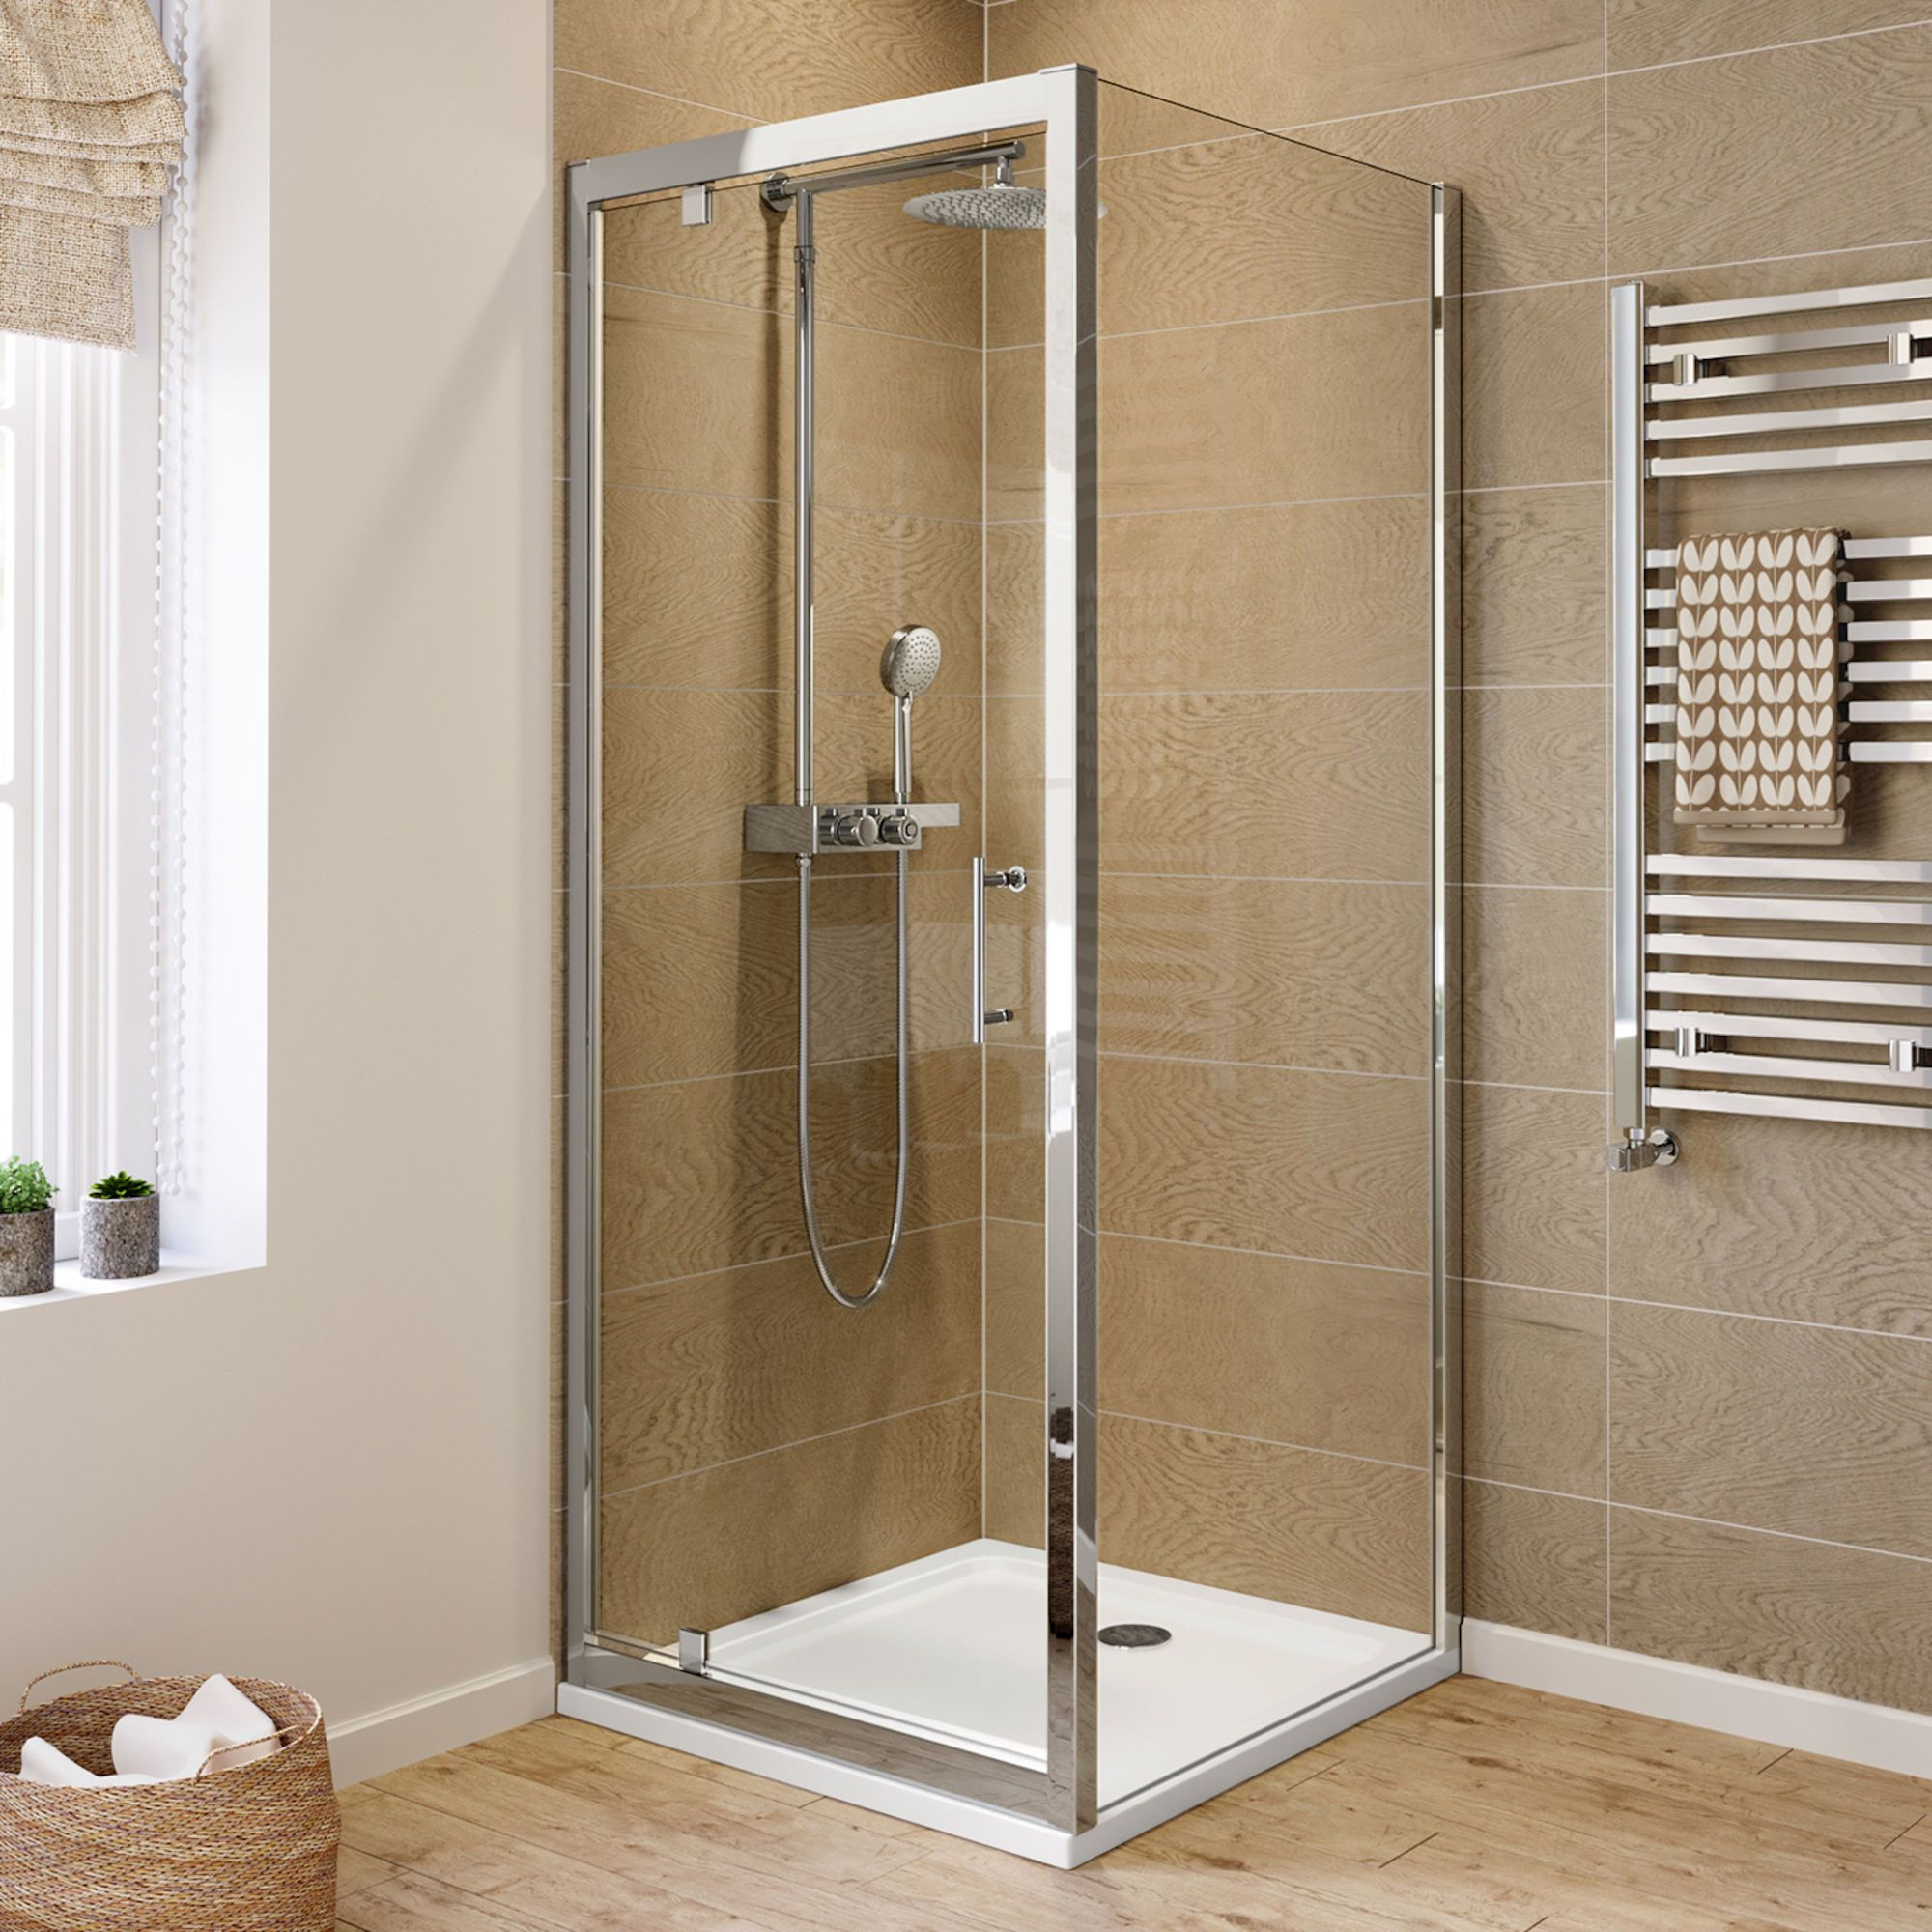 760x760mm 6mm Elements Pivot Door Shower Enclosure Shower Enclosure Corner Shower Enclosures Pivot Doors